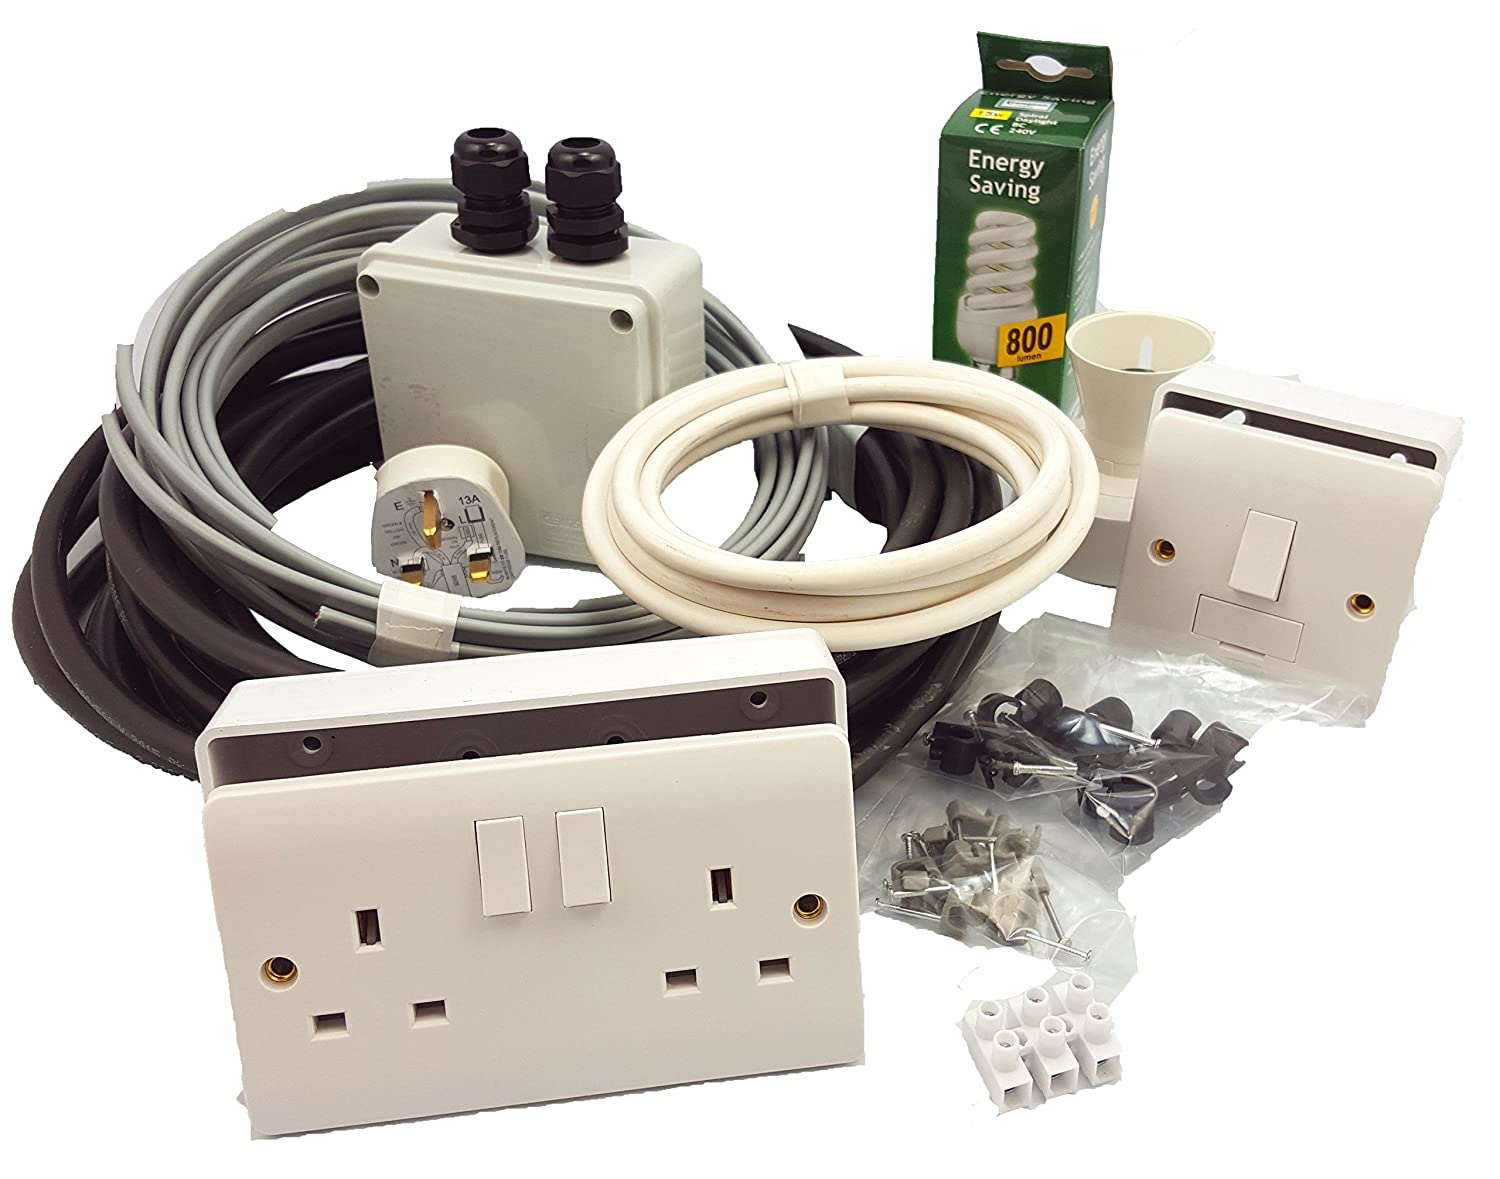 Garden Shed Complete Electrics Kit Incl Double Socket Light Point Wiring An Outdoor Plug And Underground Twin Earth Cable Kitchen Home